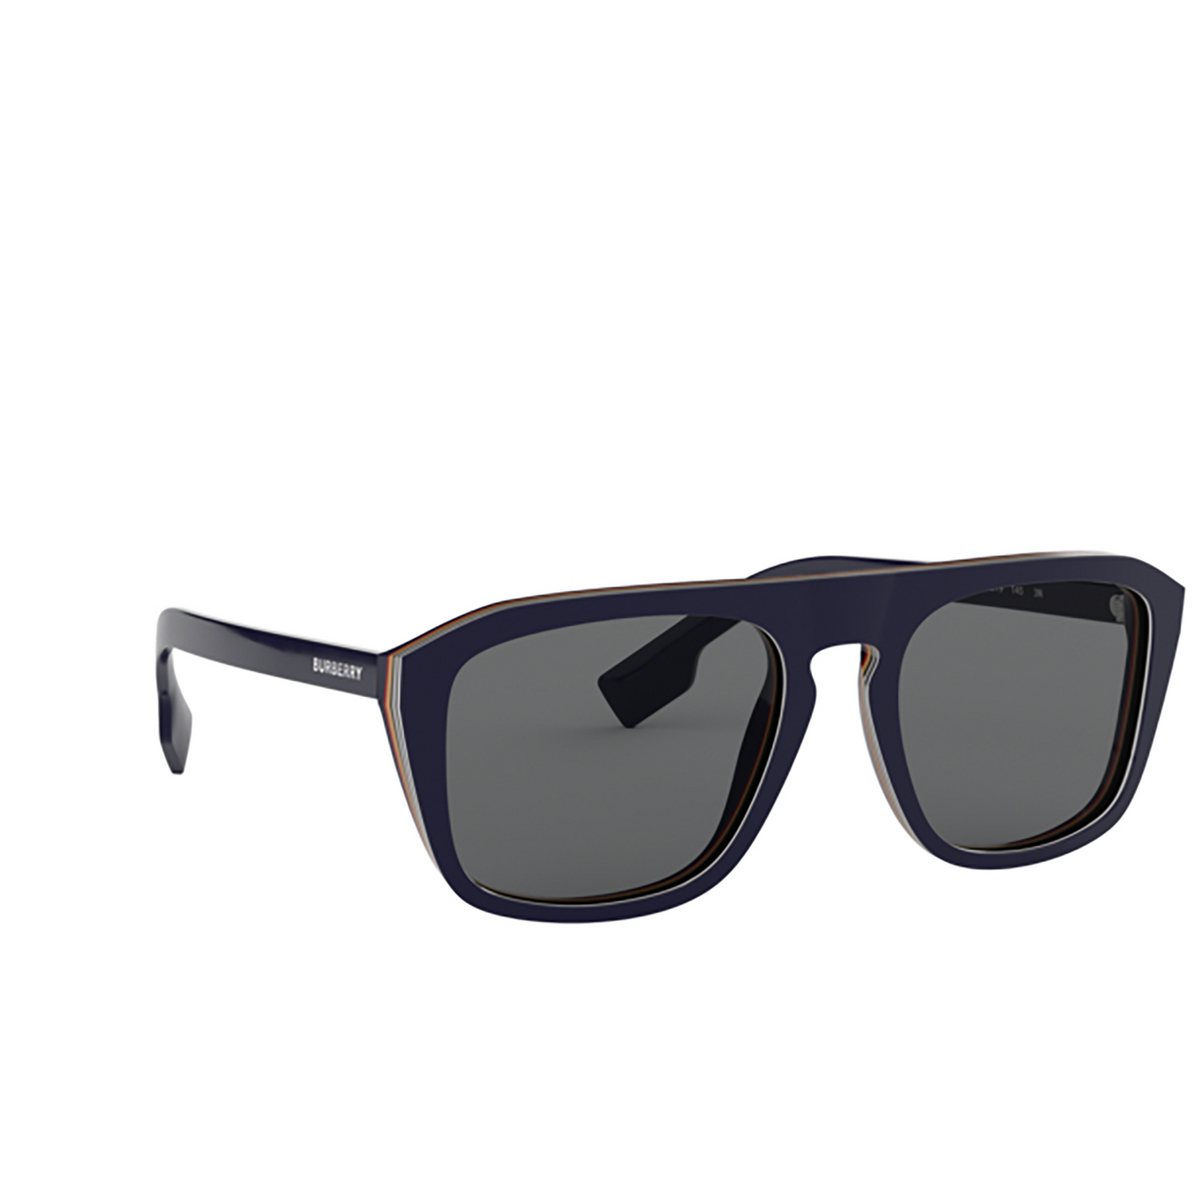 Burberry® Square Sunglasses: BE4286 color Check Multilayer Blue 379987 - three-quarters view.